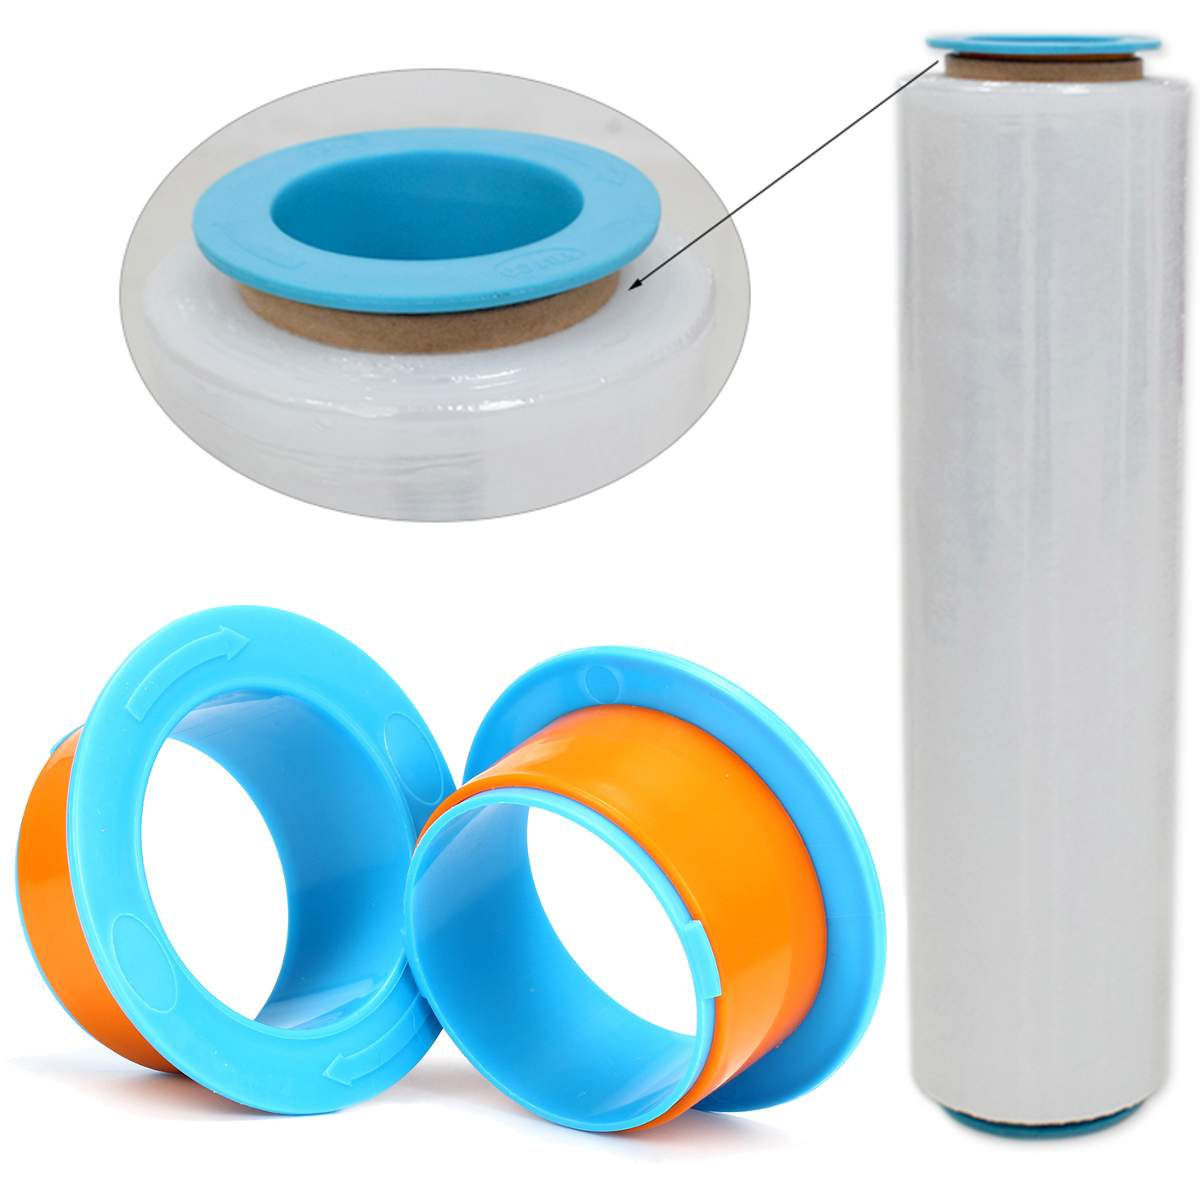 Frank 1 Pair Stretch Film Hand Saver Protector Wrapping Machines Films Port Lubricator For 3 Inch Diameter Film Core Rolls Hand Tools Tools Power Tool Accessories